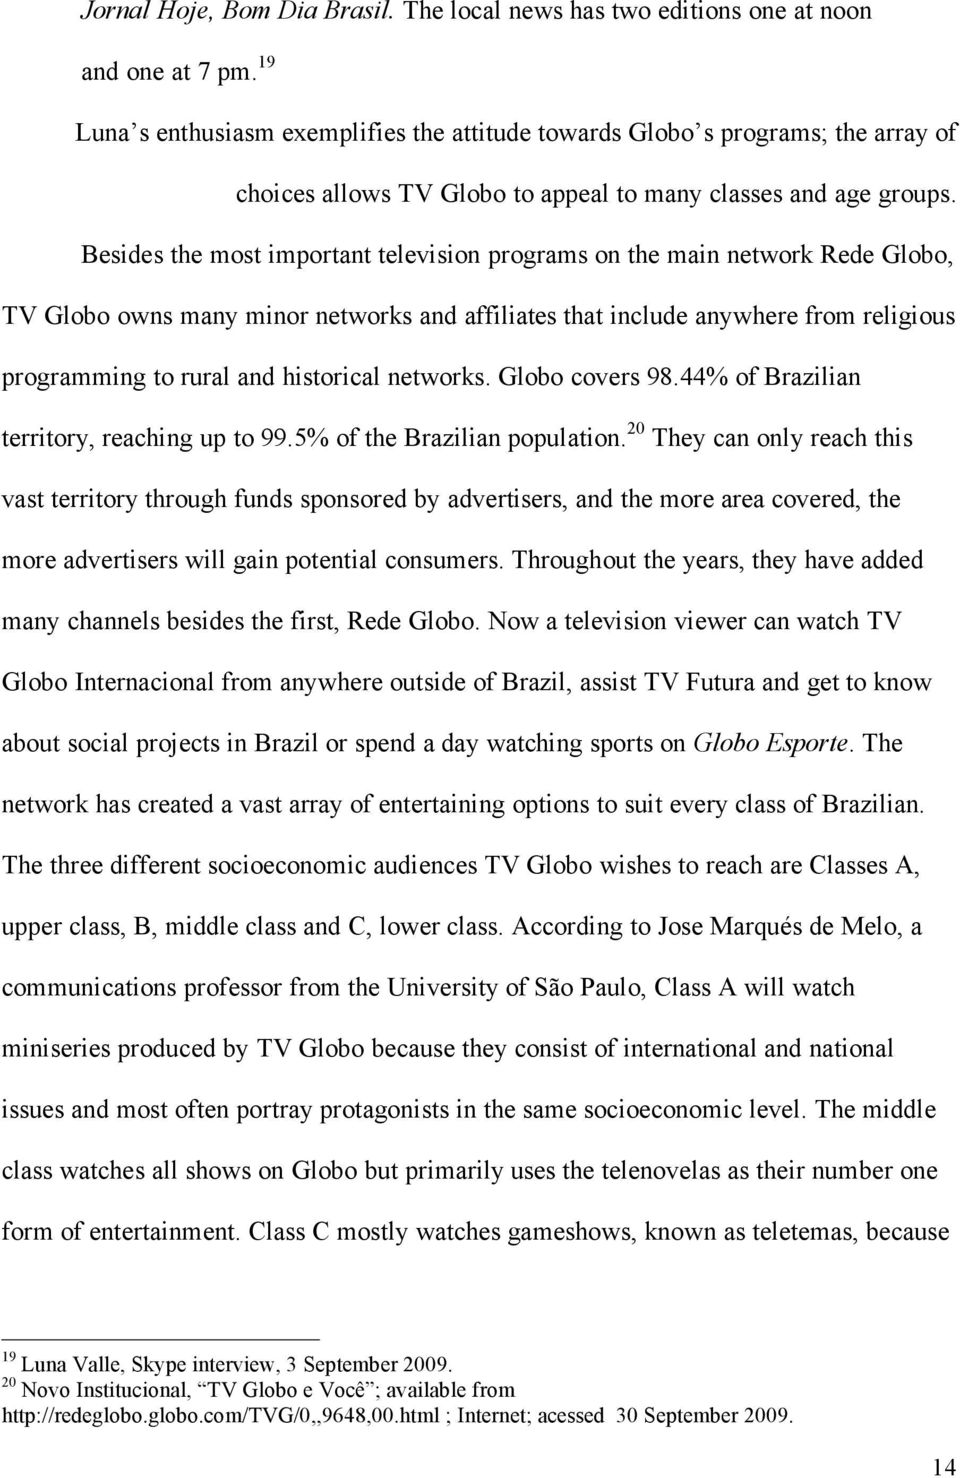 Besides the most important television programs on the main network Rede Globo, TV Globo owns many minor networks and affiliates that include anywhere from religious programming to rural and